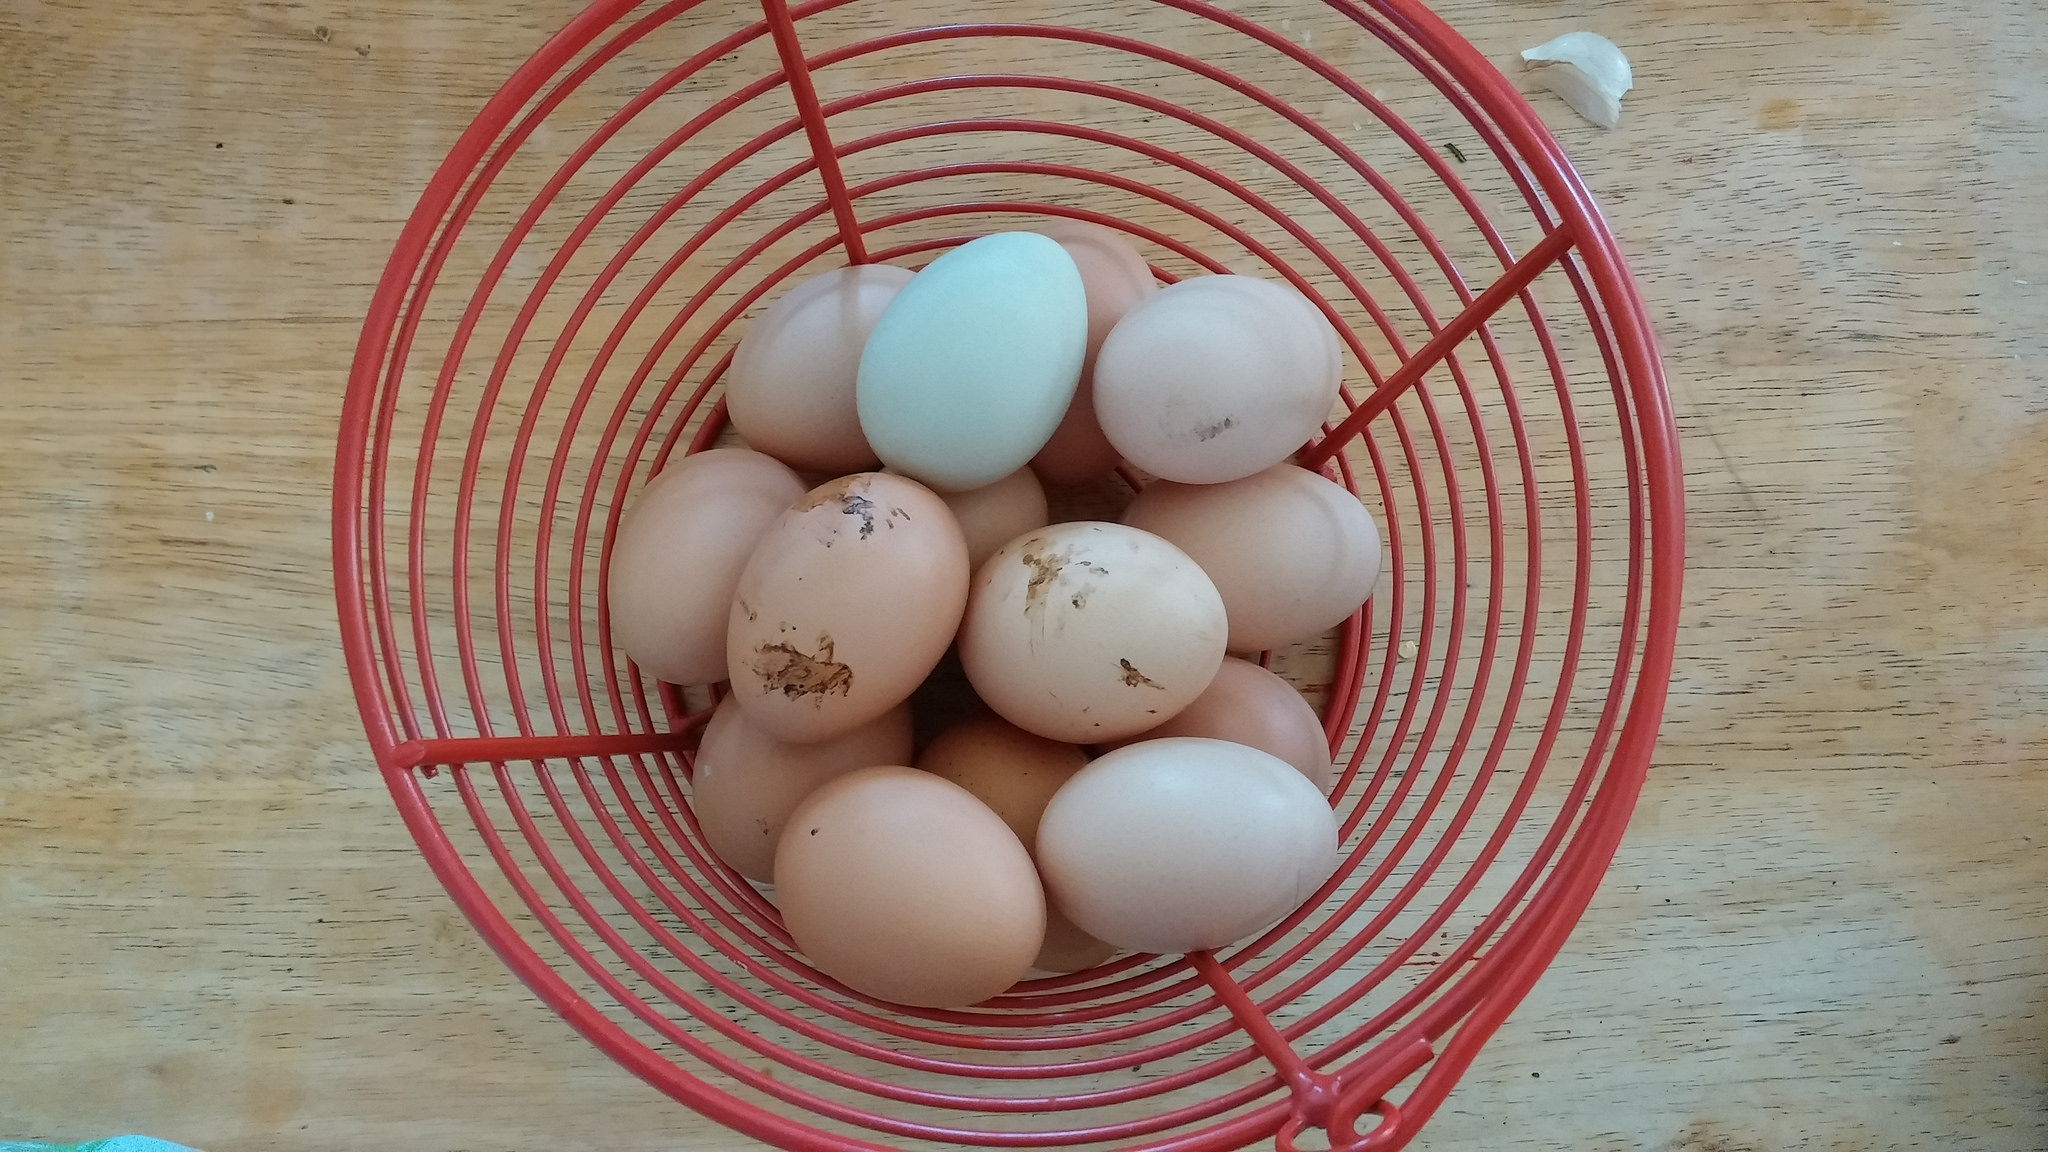 And their eggs are pretty, tasty and sugar-free.